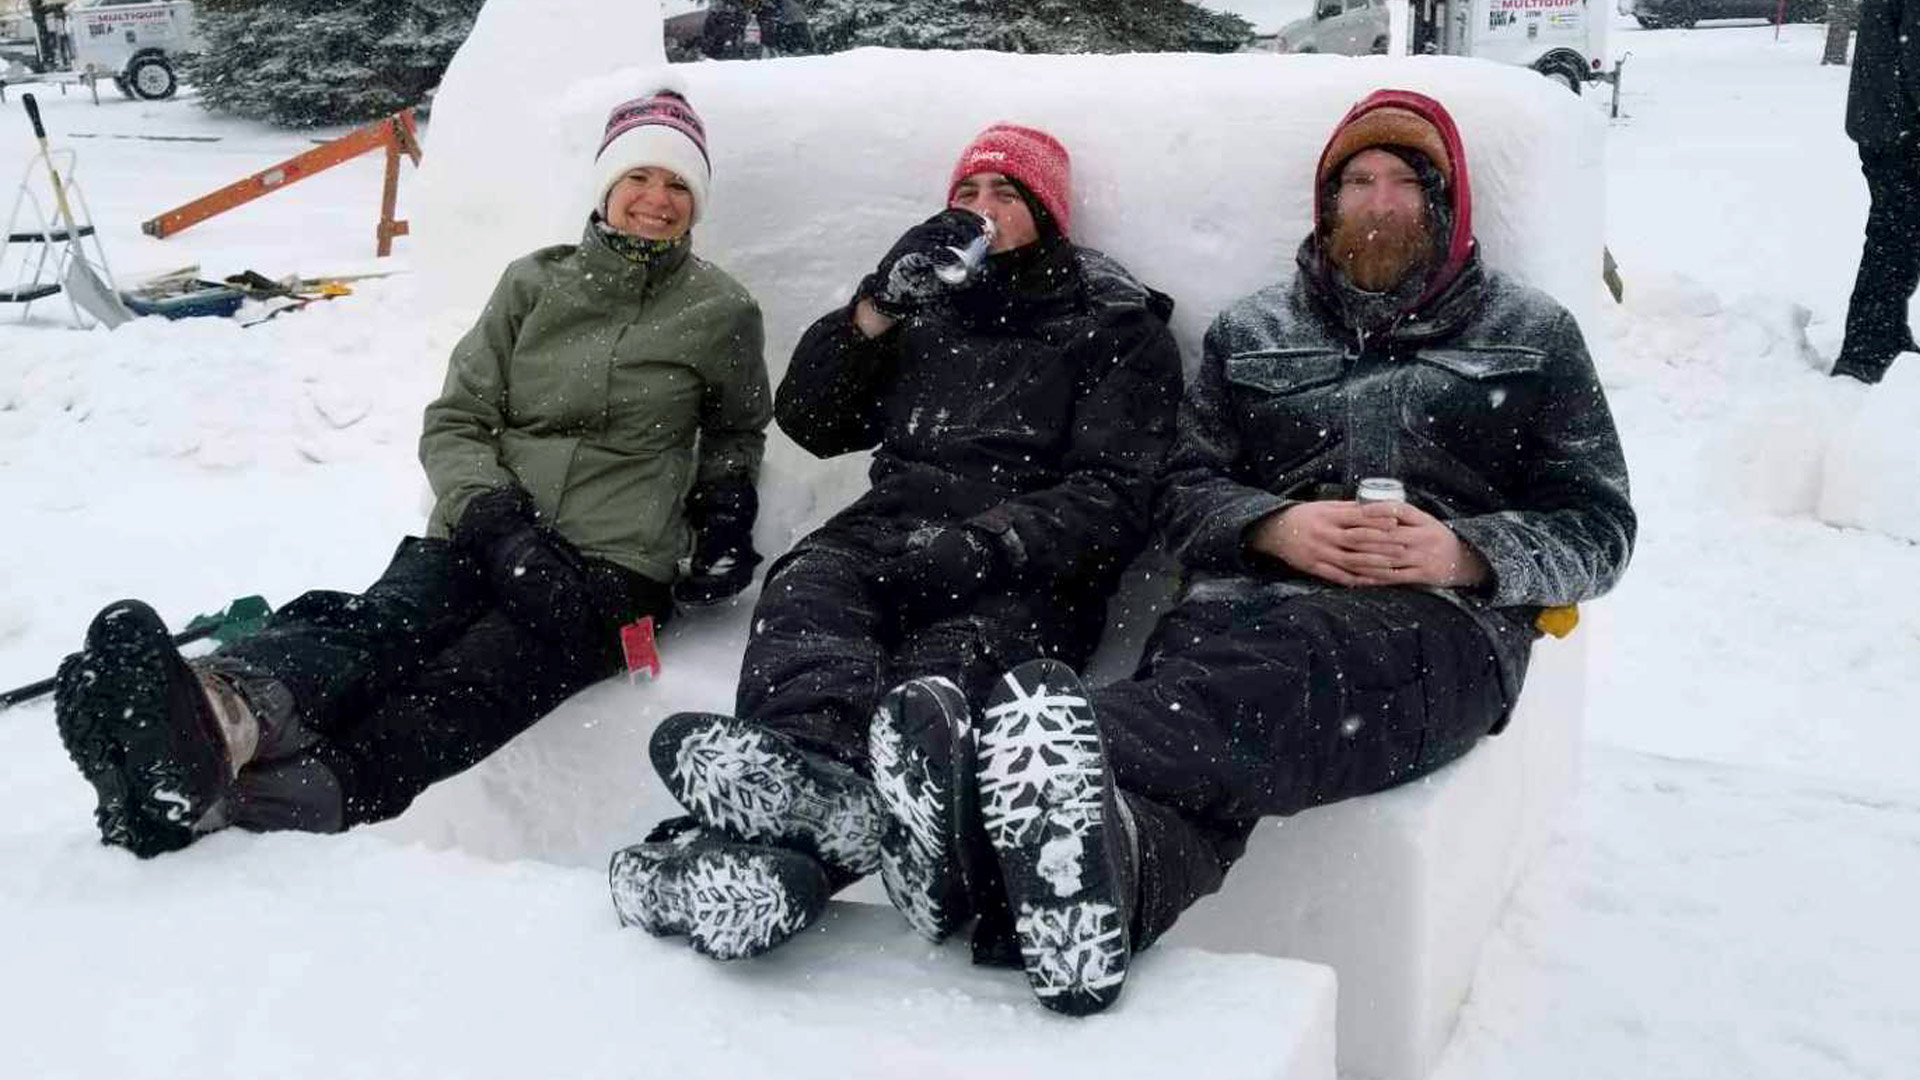 Three people sitting on a couch made of snow